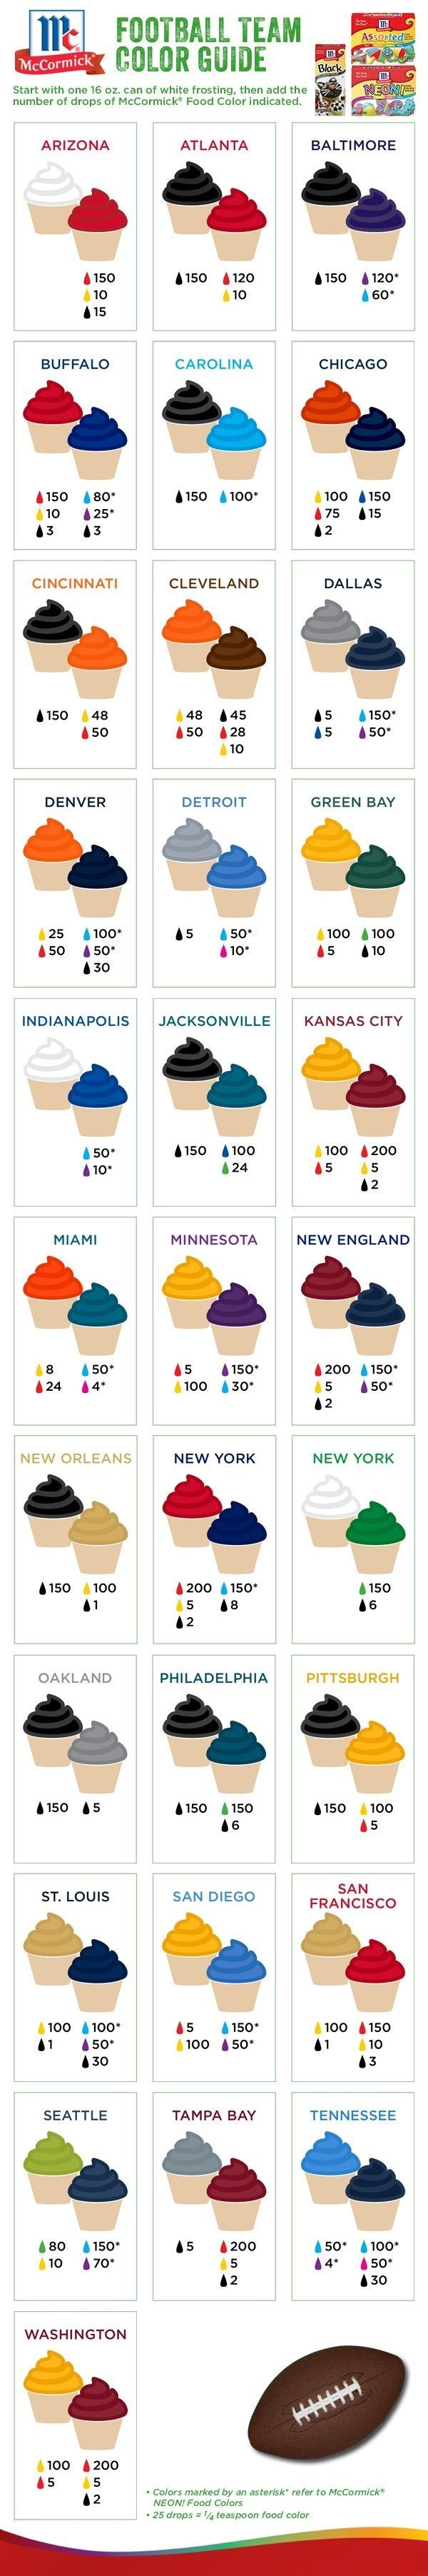 Football Team Food Coloring Guide football sports desert cupcakes diy baking recipe recipes ingredients instructions desert recipes easy recipes snacks cupcake recipes how to tutorial food coloring